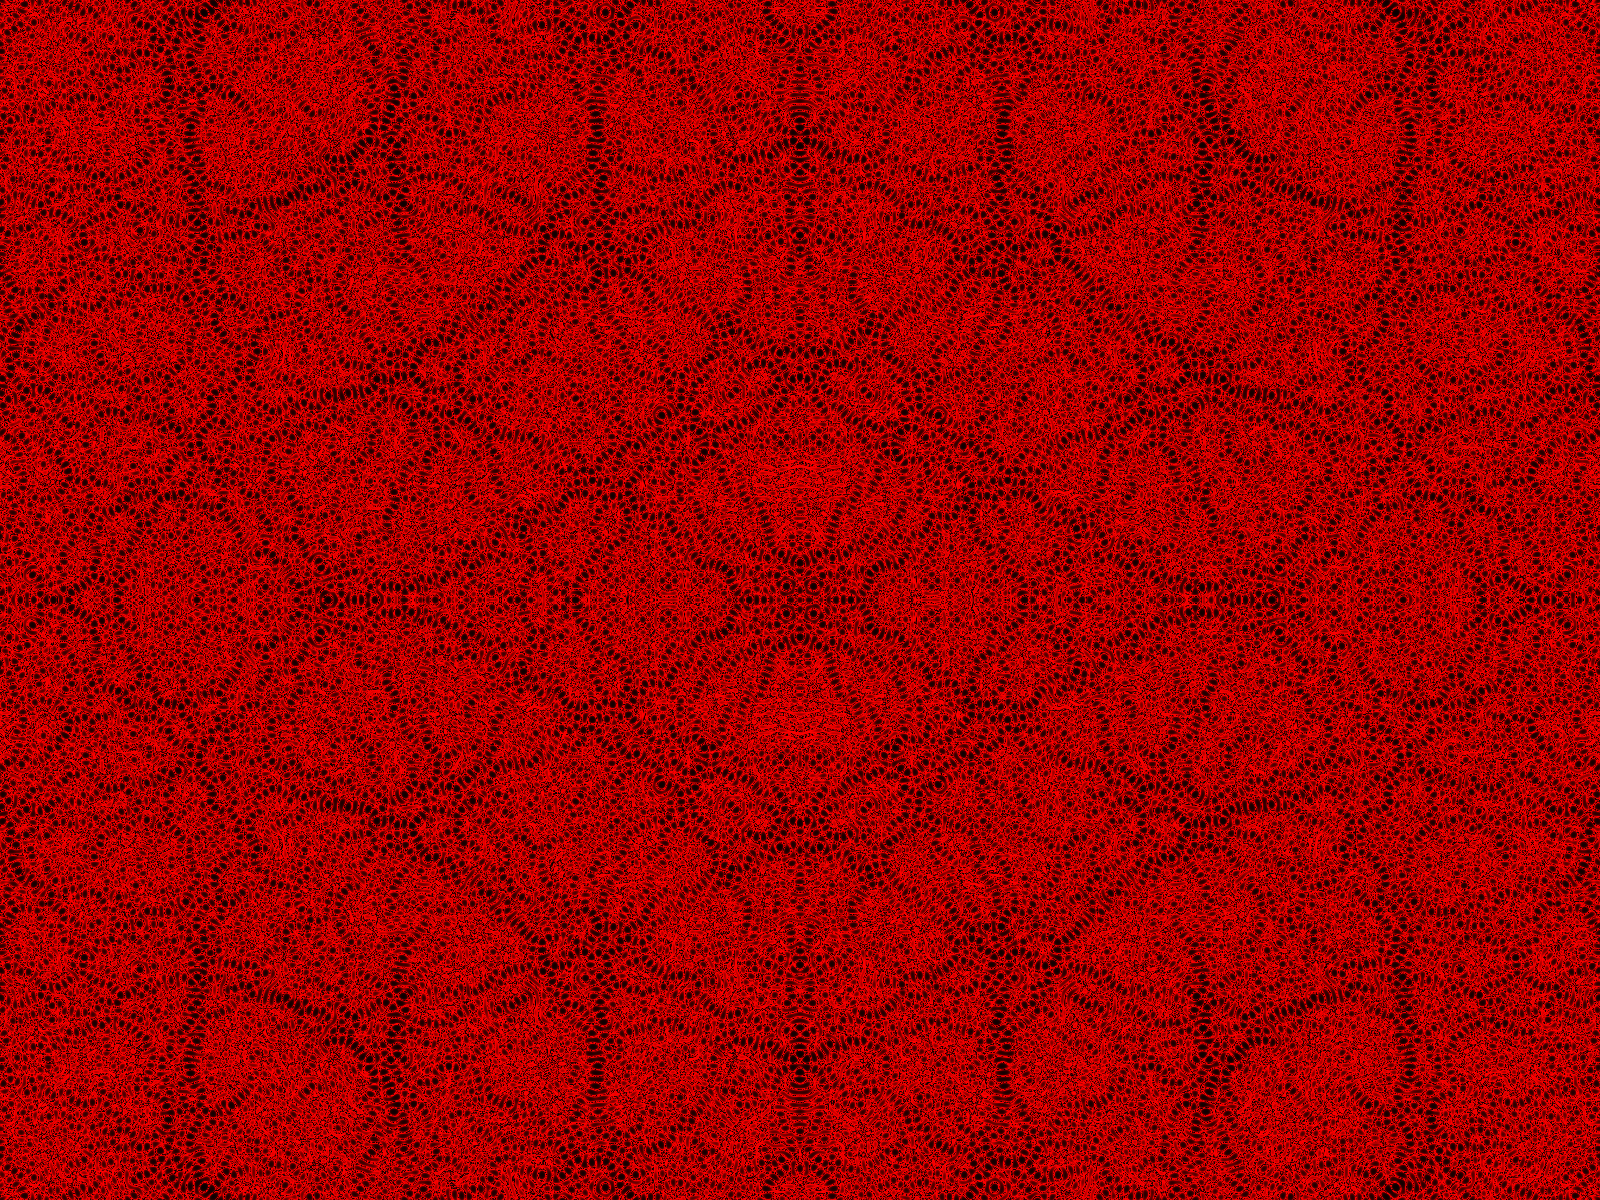 Red Hot Pattern